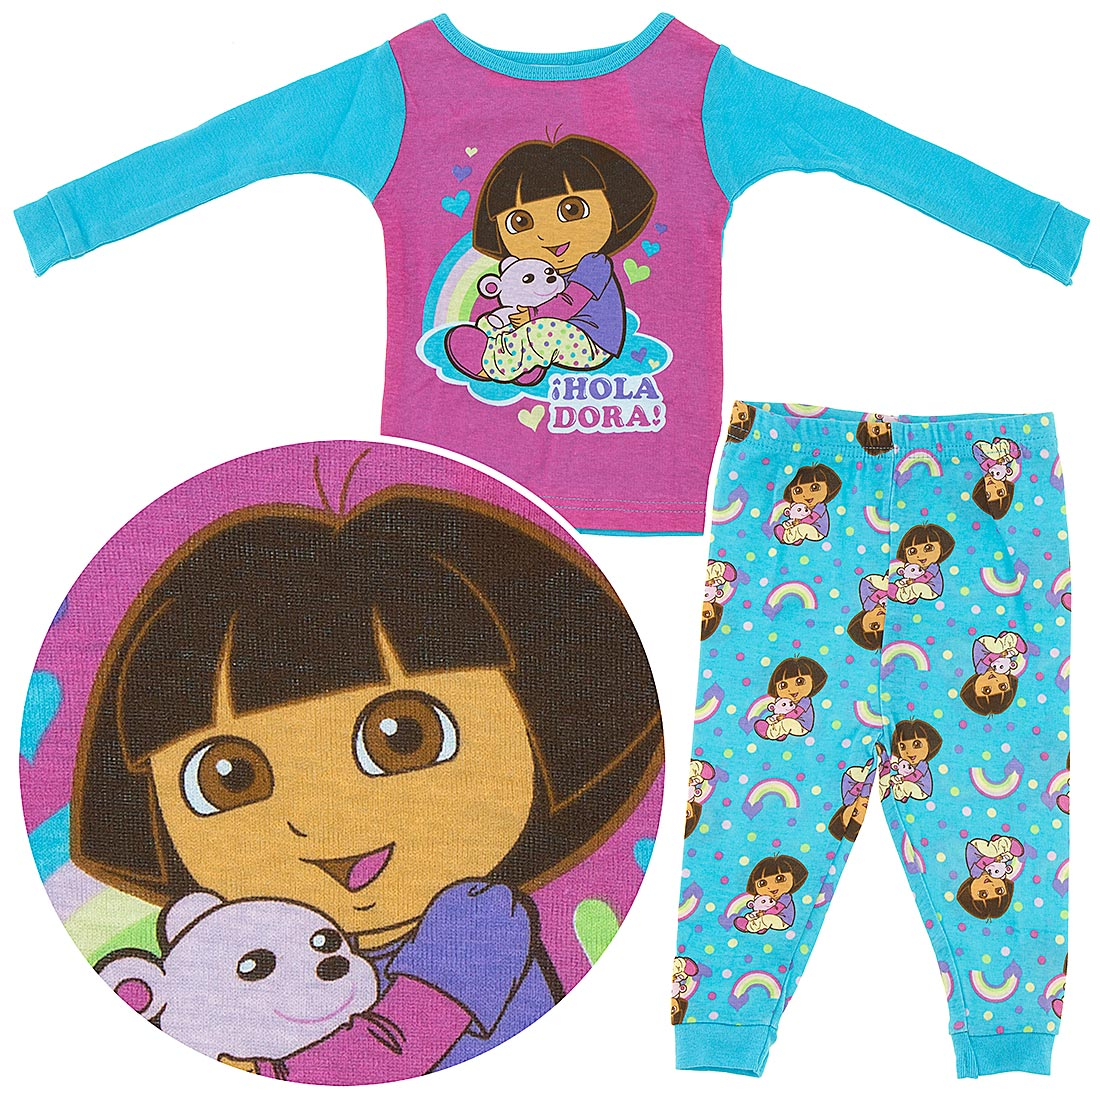 Dora the Explorer Pajamas for Toddler Girls